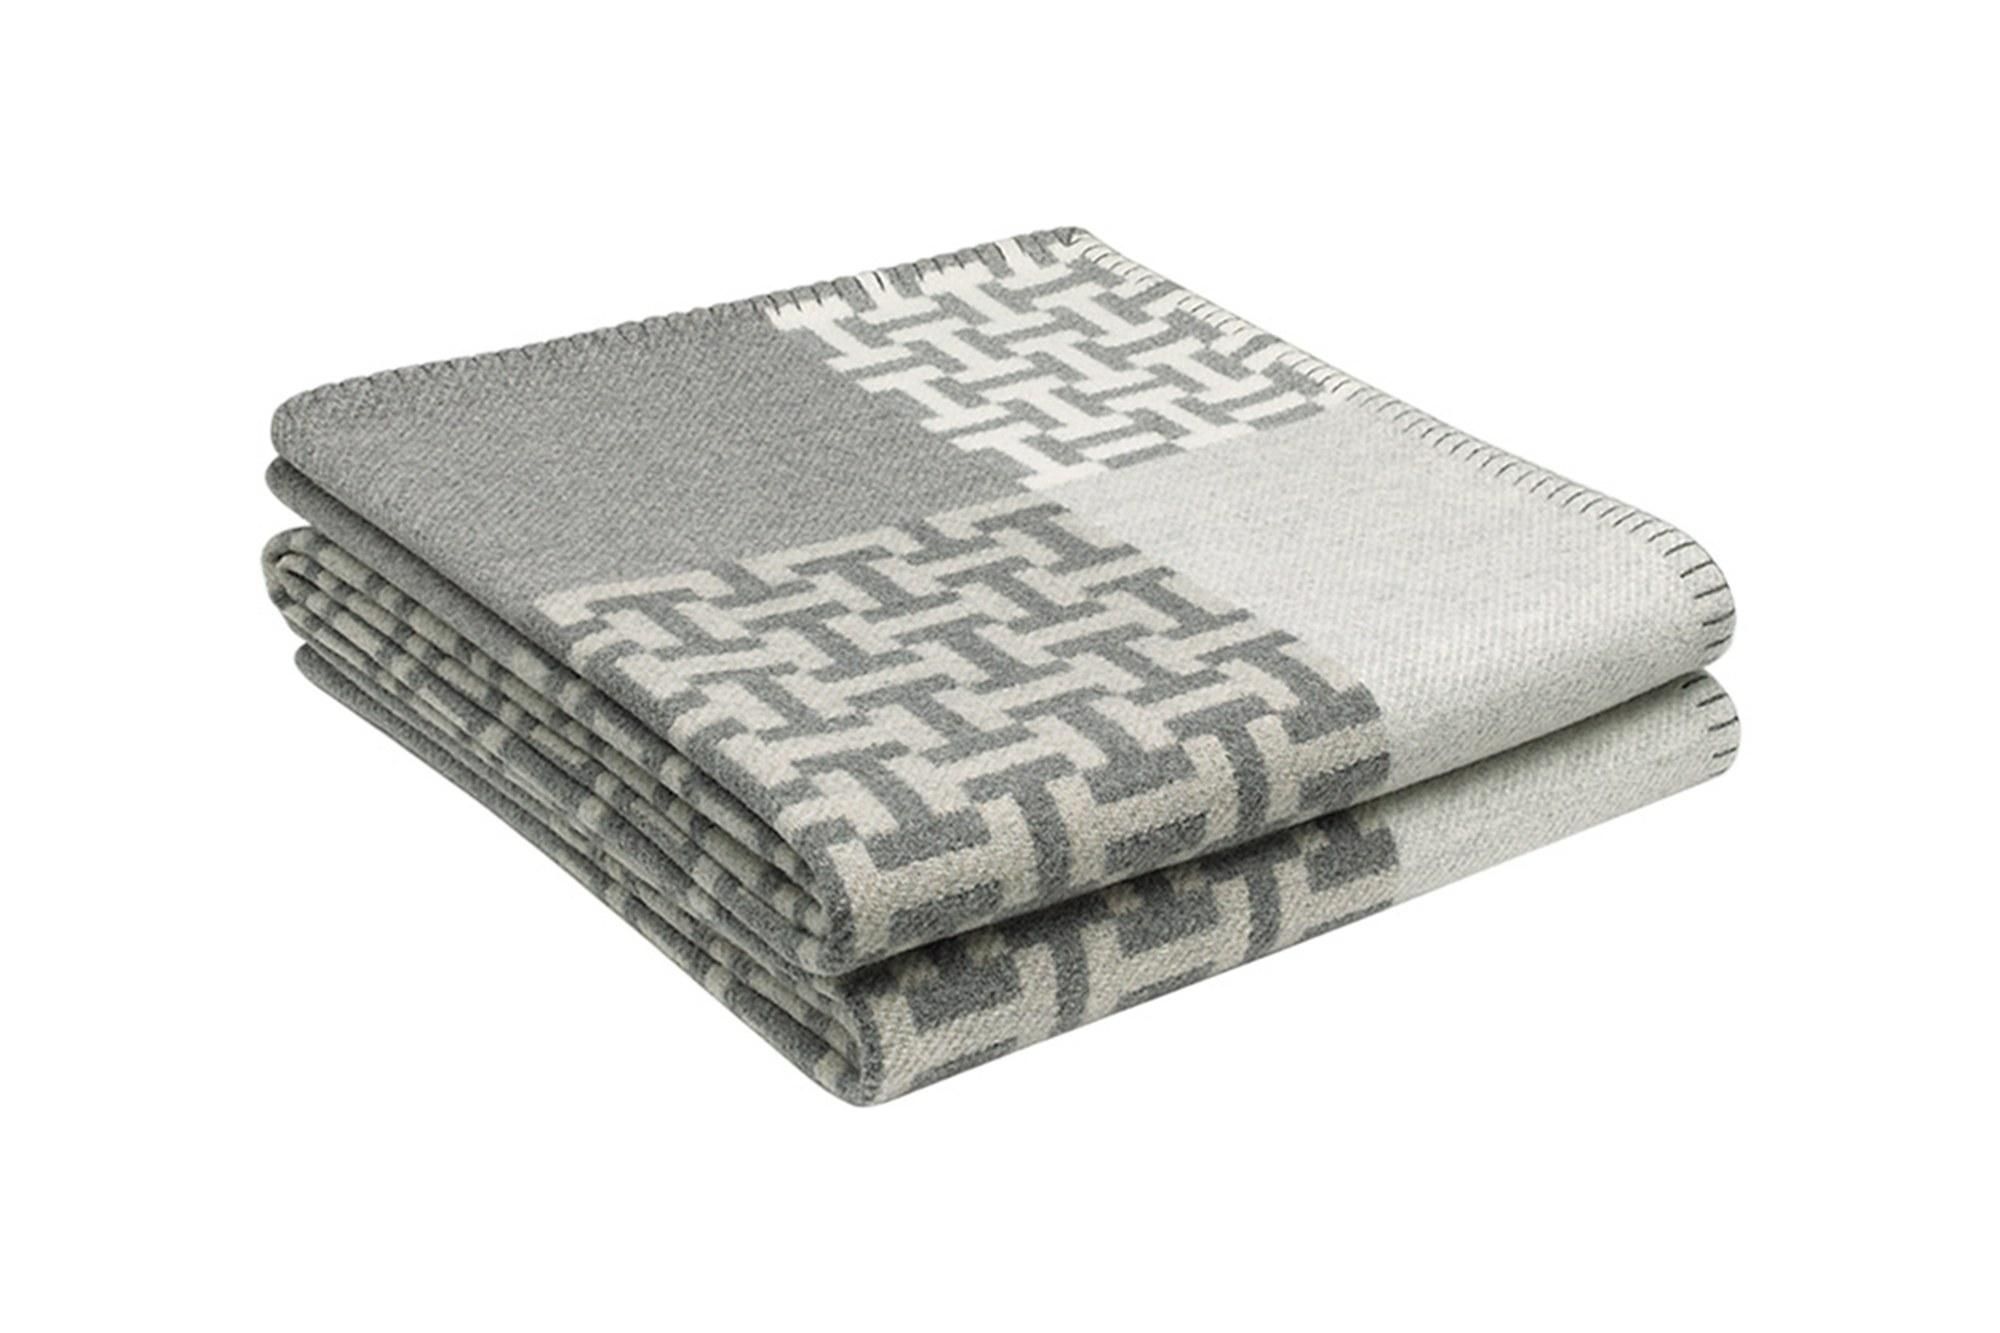 13 Manly Blankets That'll Make Your Place Less Boring Photos | Gq With Regard To Grey Throws For Sofas (View 6 of 20)